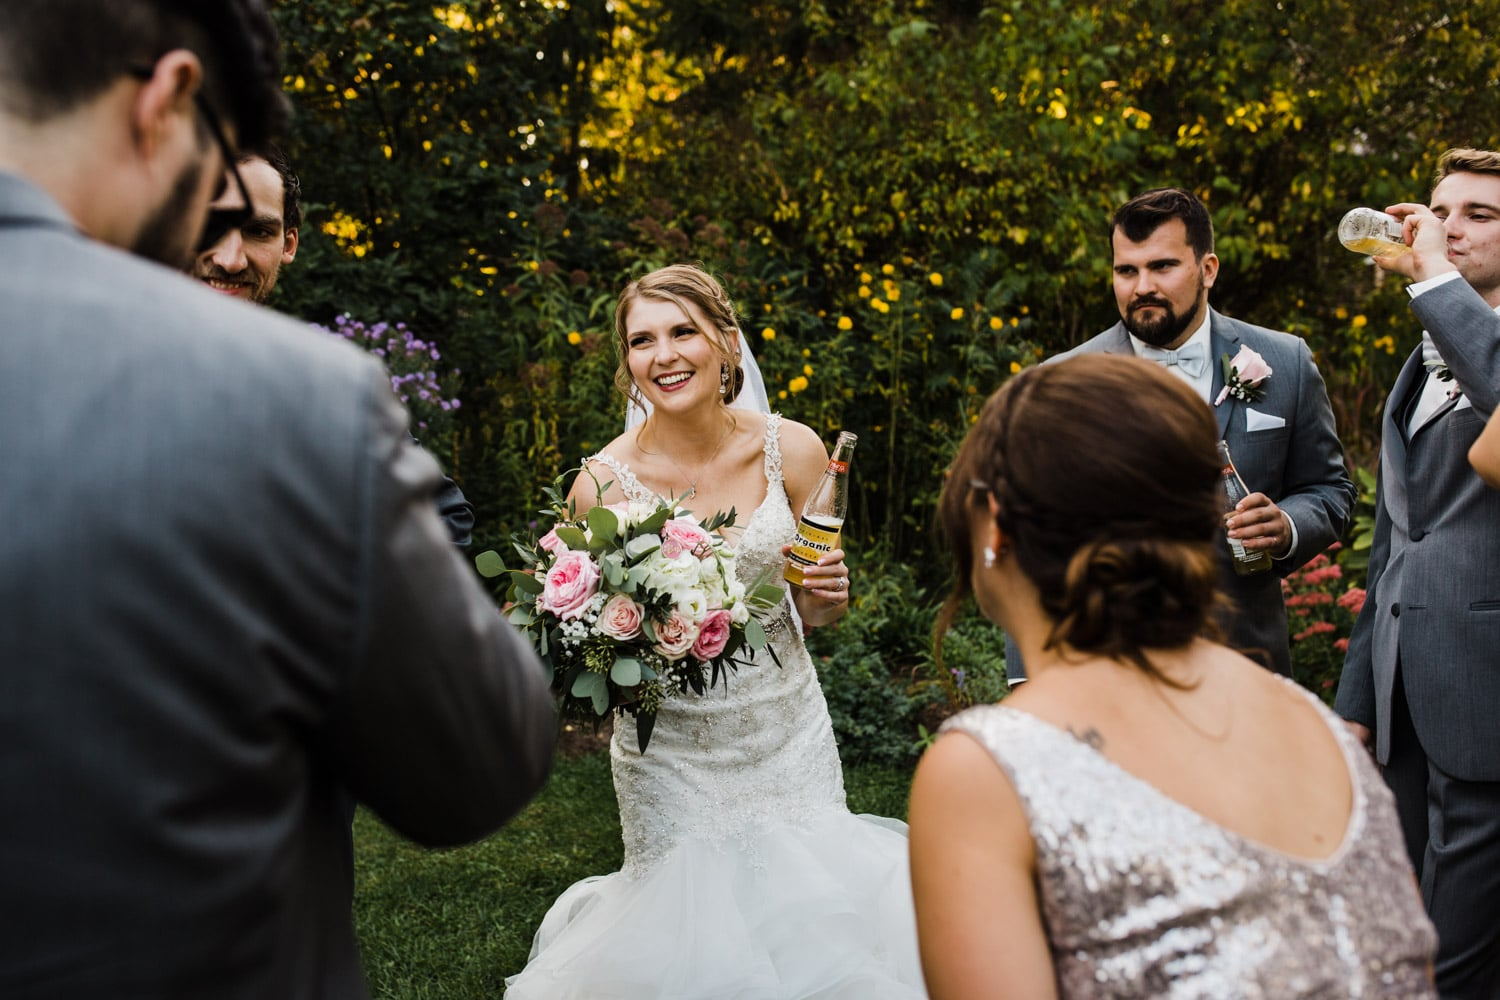 bride laughs with wedding party - strathmere wedding